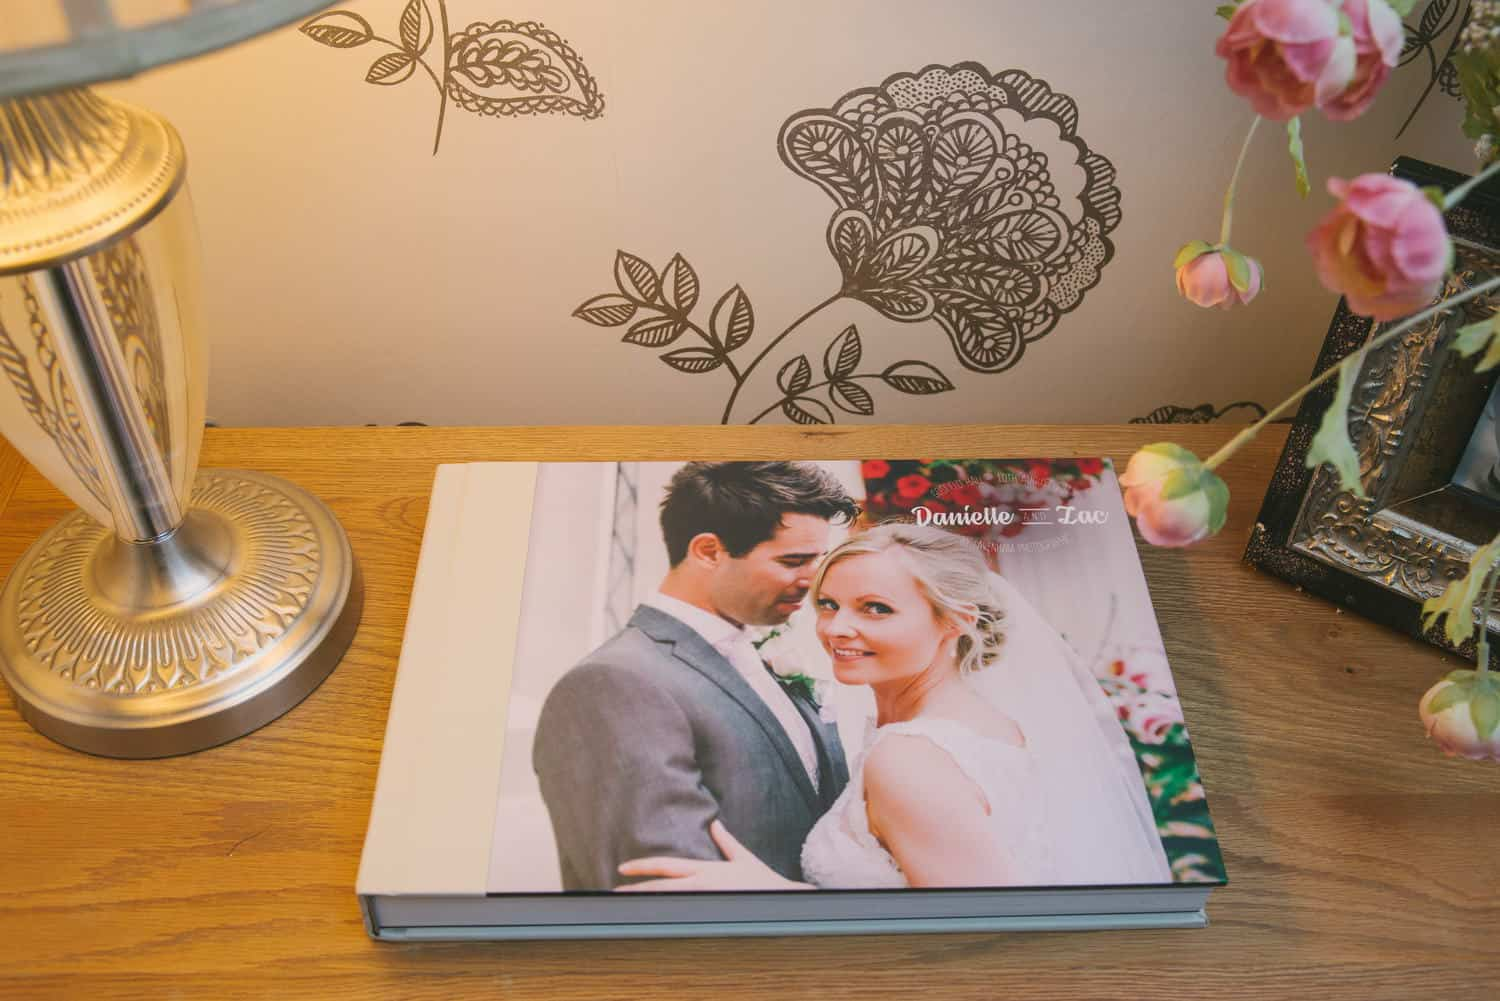 Cream leather wedding album with photographic cover